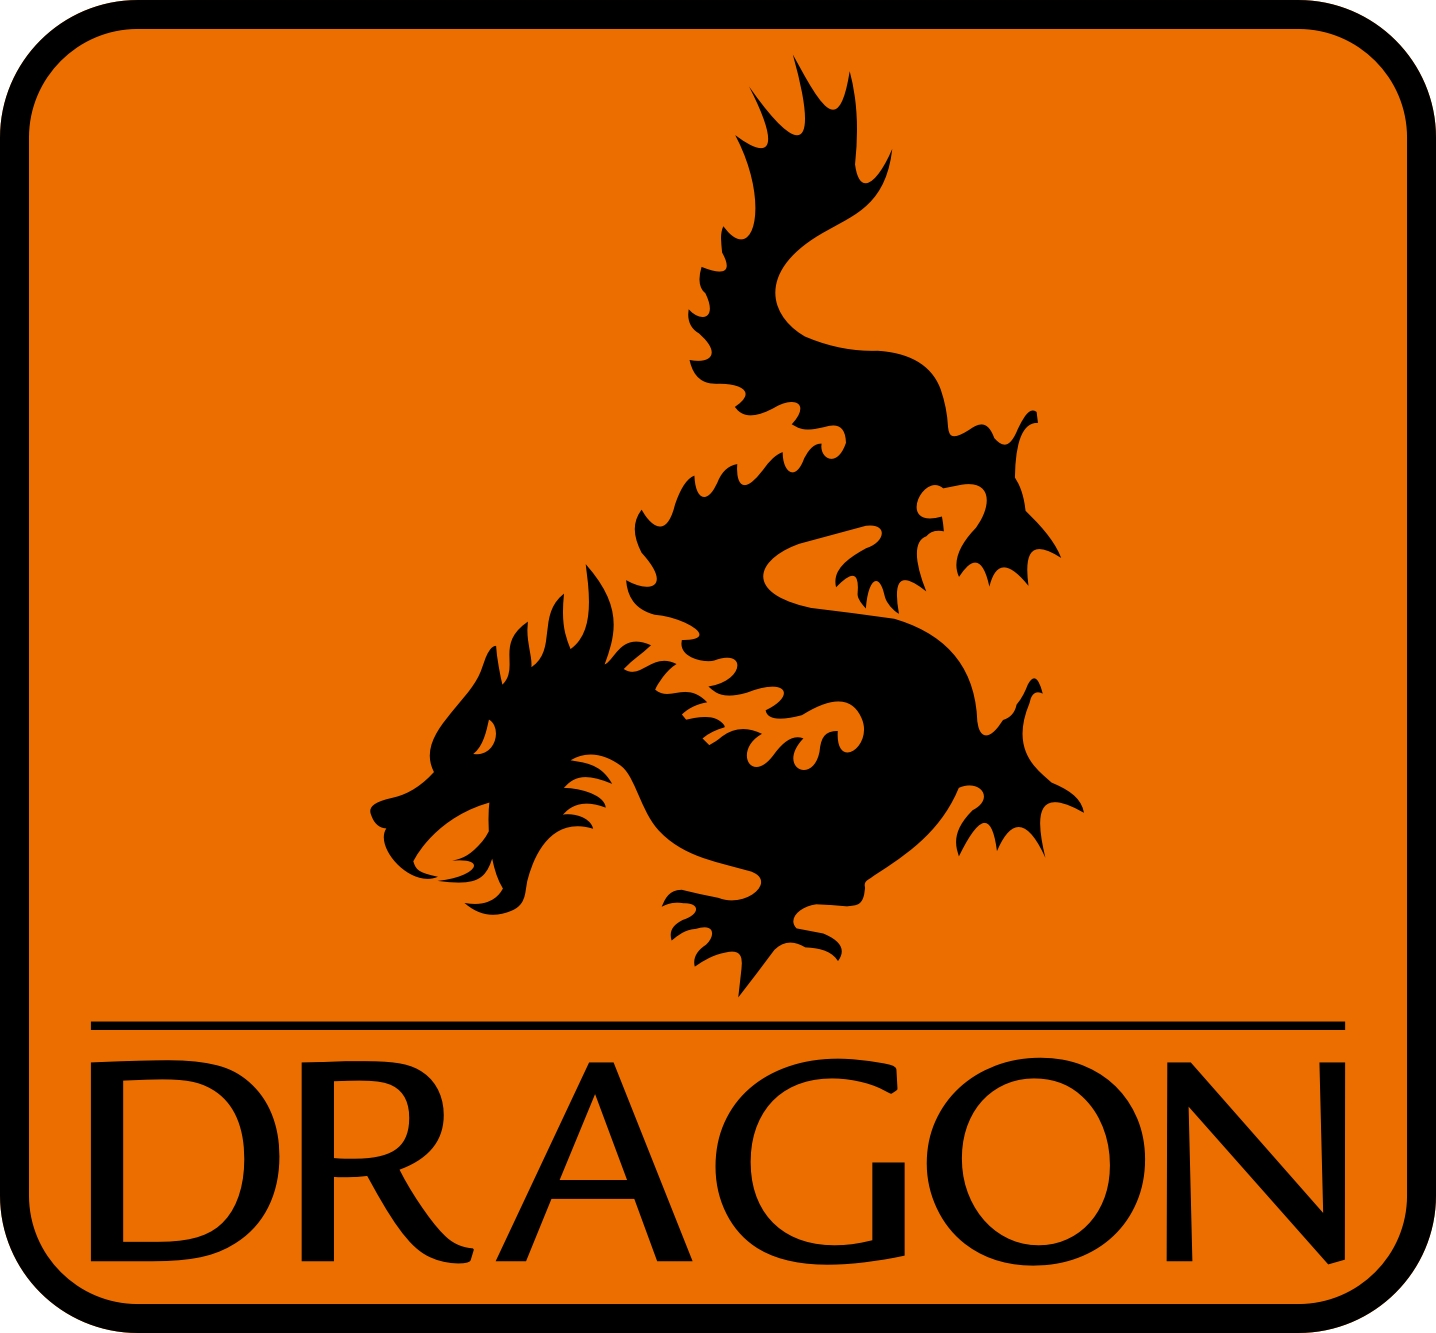 https://esrg.de/media/Member-Logos/DRAGON_LOGO.jpg